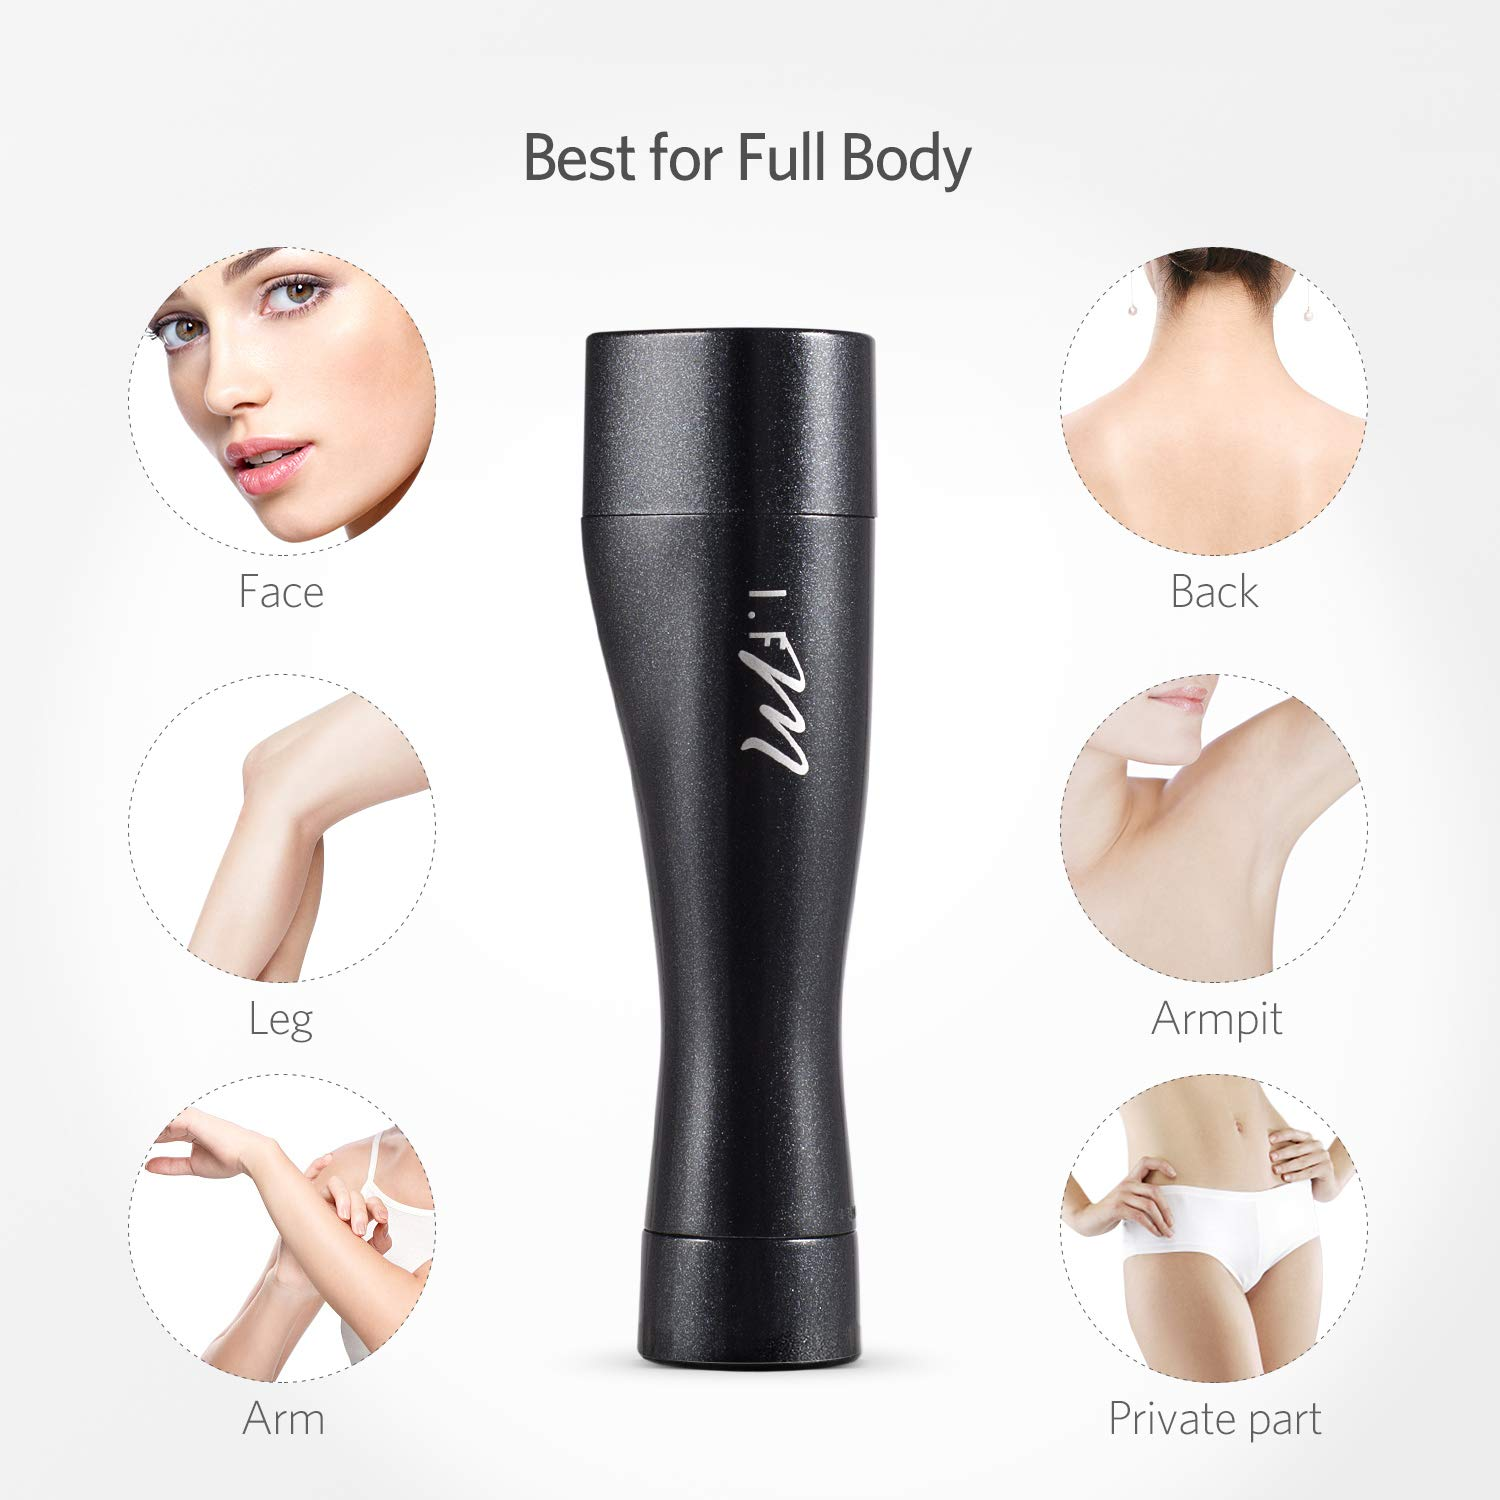 Facial Hair Removal, I.FM Waterproof Painless Flawless Hair Remover Miniature Female Facial Hair Remover by I.FM (Image #8)